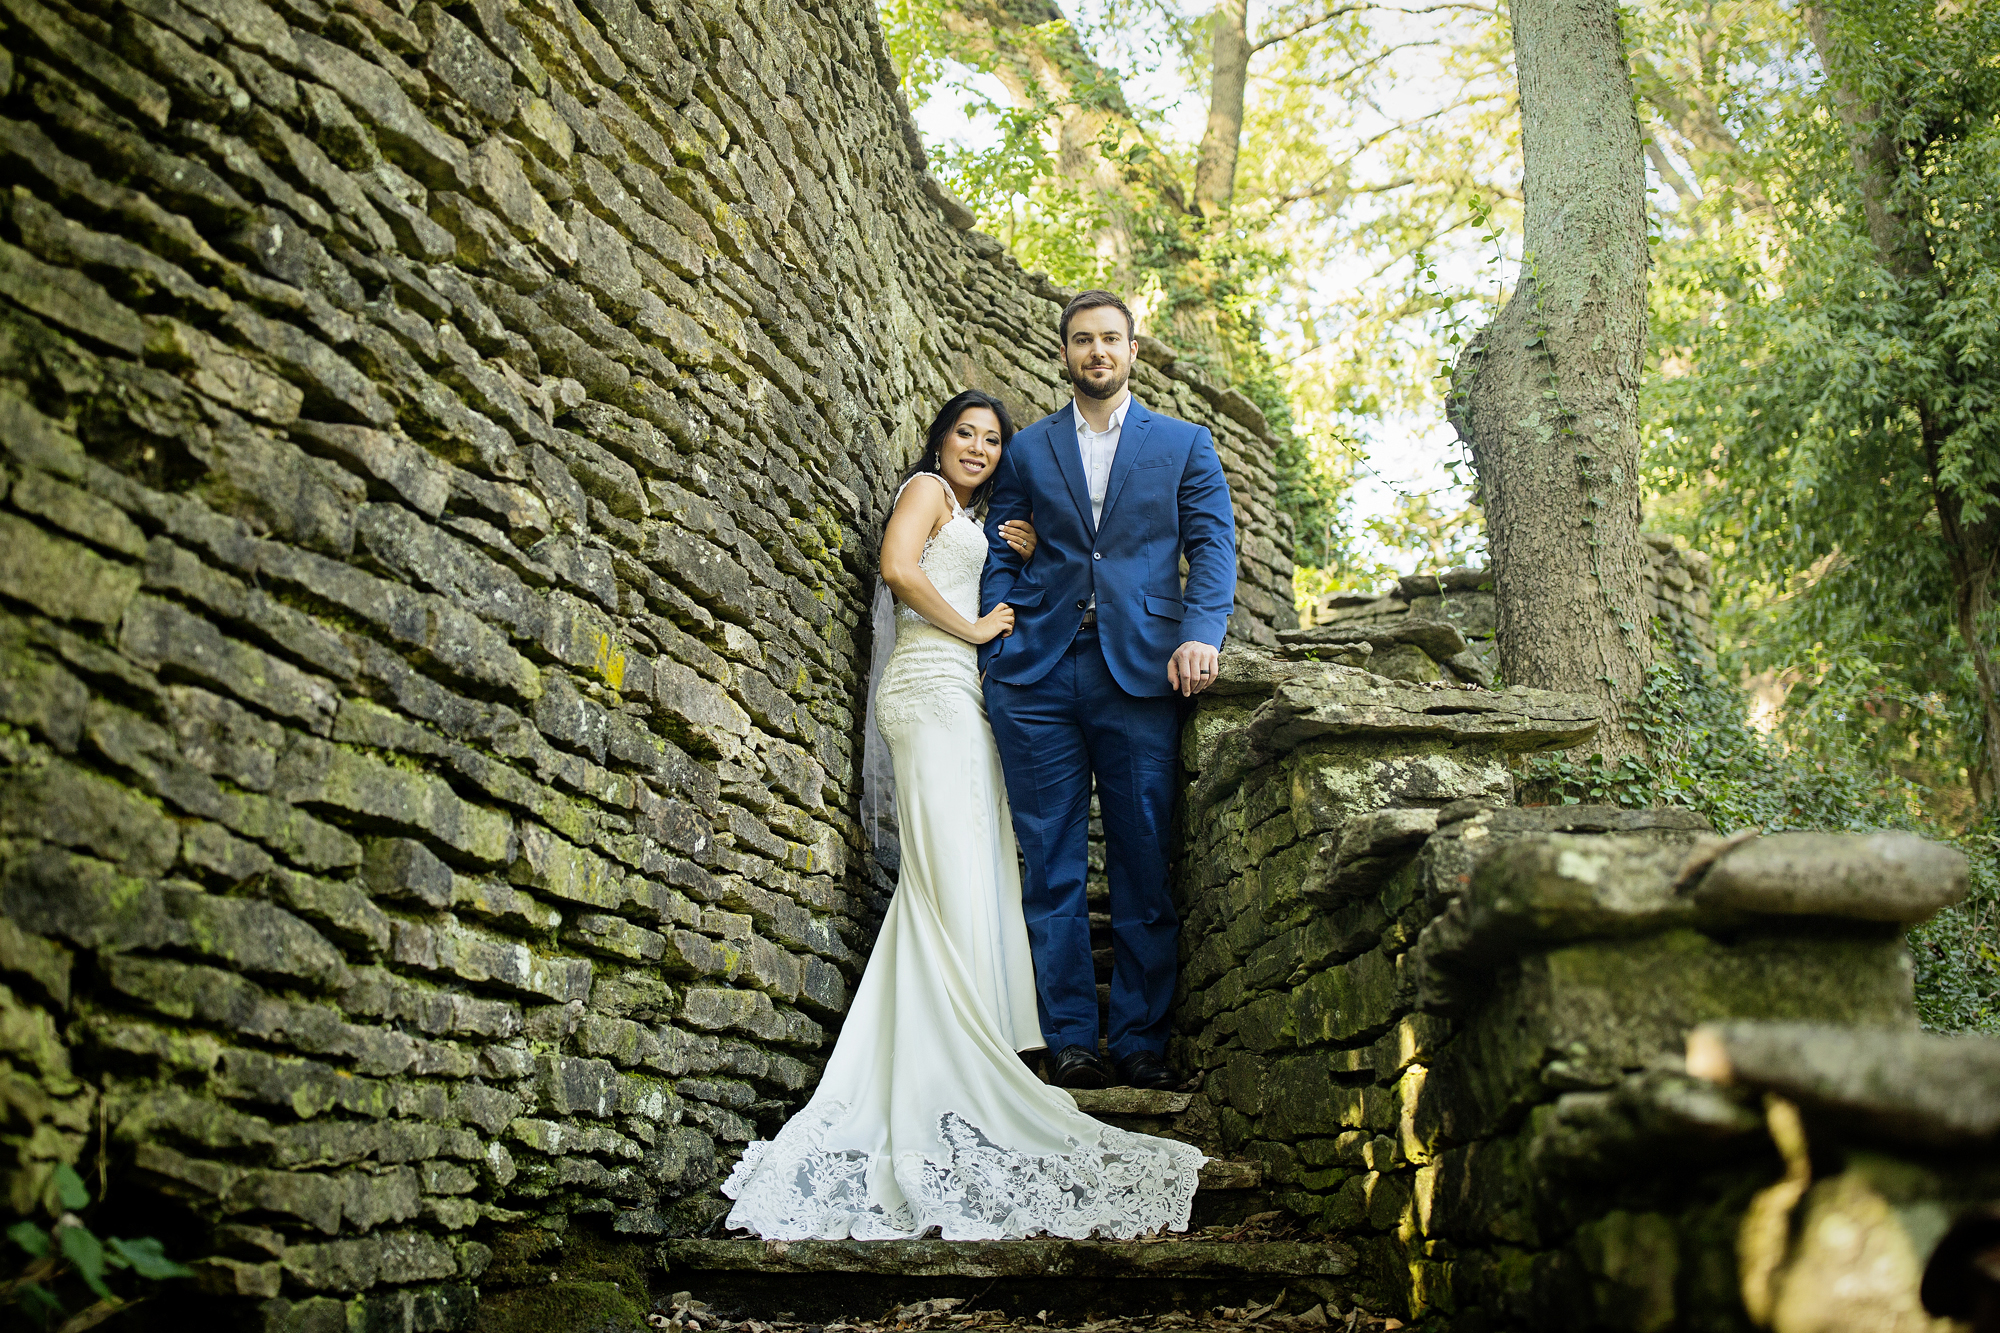 Seriously_Sabrina_Photography_Lexington_Kentucky_Horse_Park_Bride_Groom_Portraits_LynaJeff7.jpg